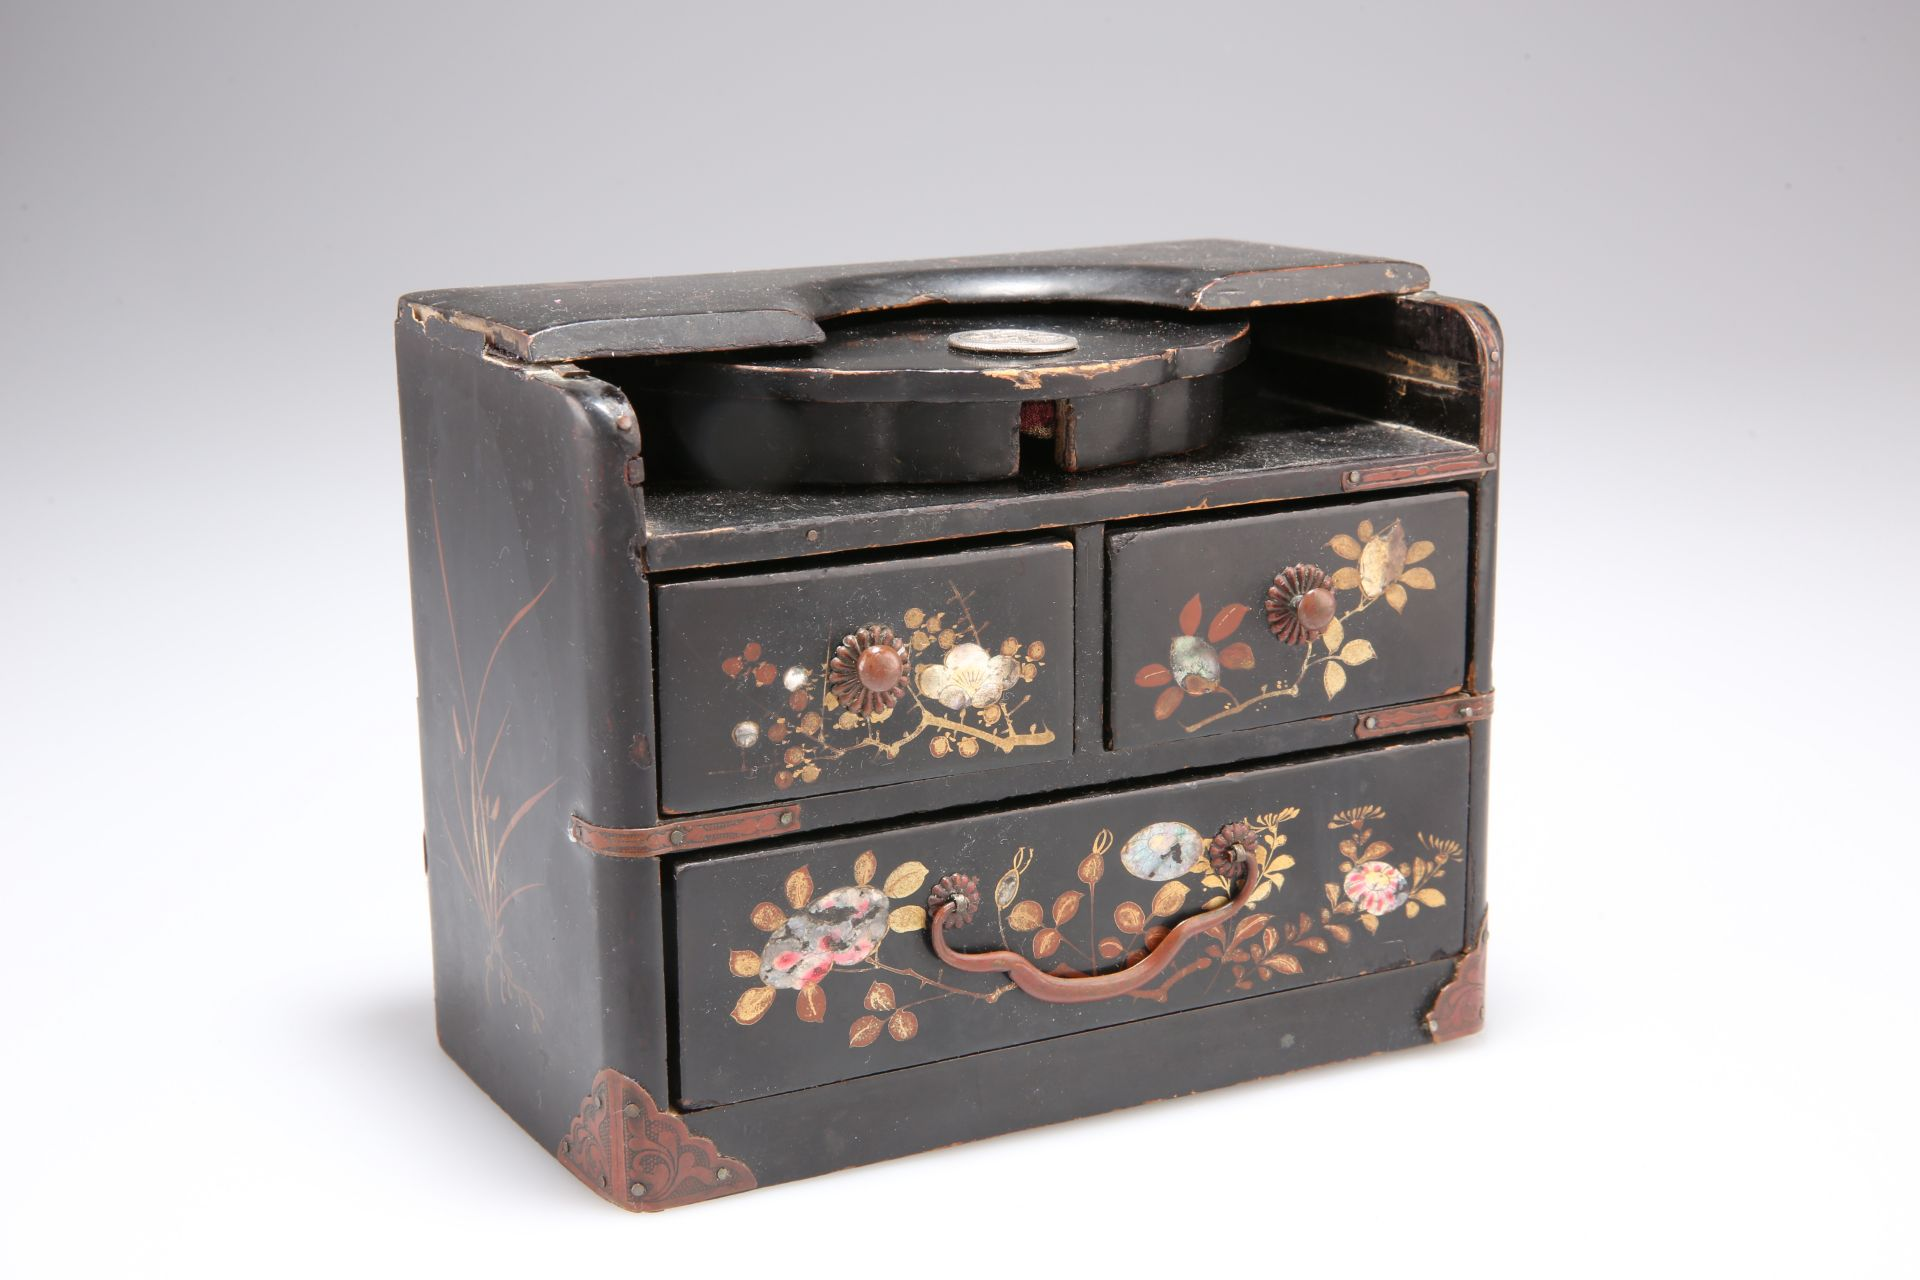 AN EARLY 20TH CENTURY JAPANESE LACQUER POCKET WATCH HOLDER, in the form of a chest of drawers,